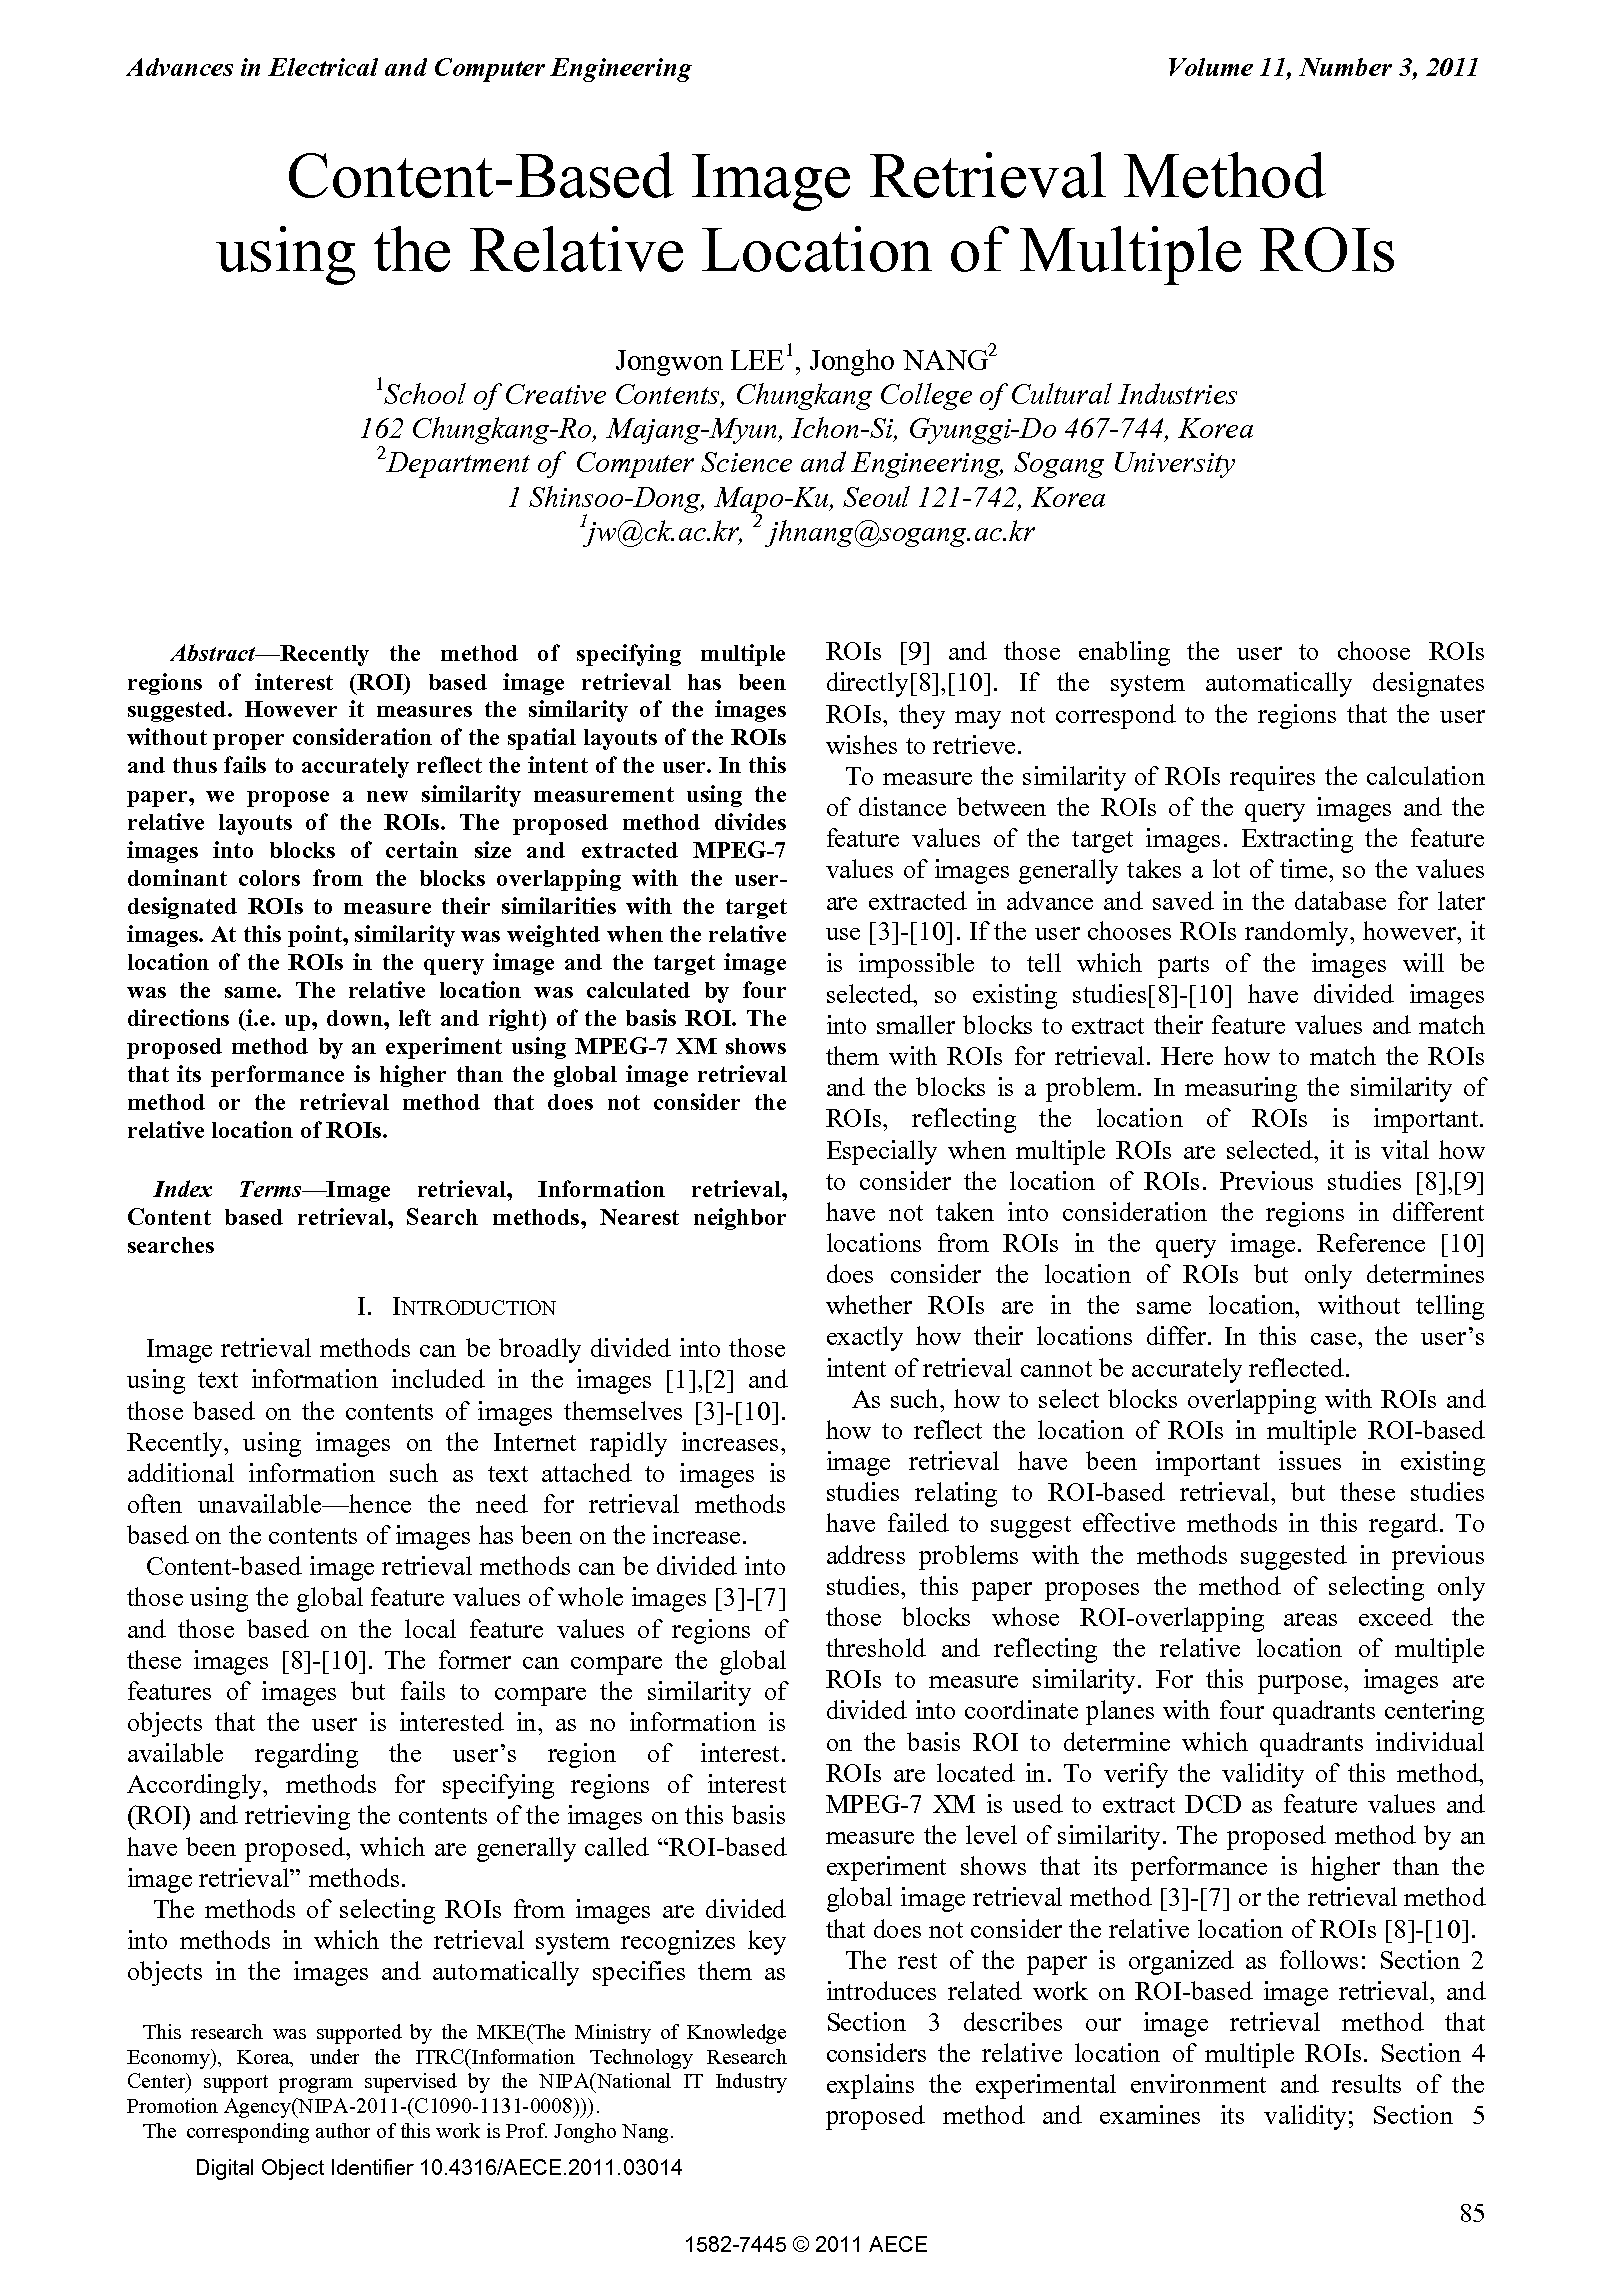 PDF Quickview for paper with DOI:10.4316/AECE.2011.03014